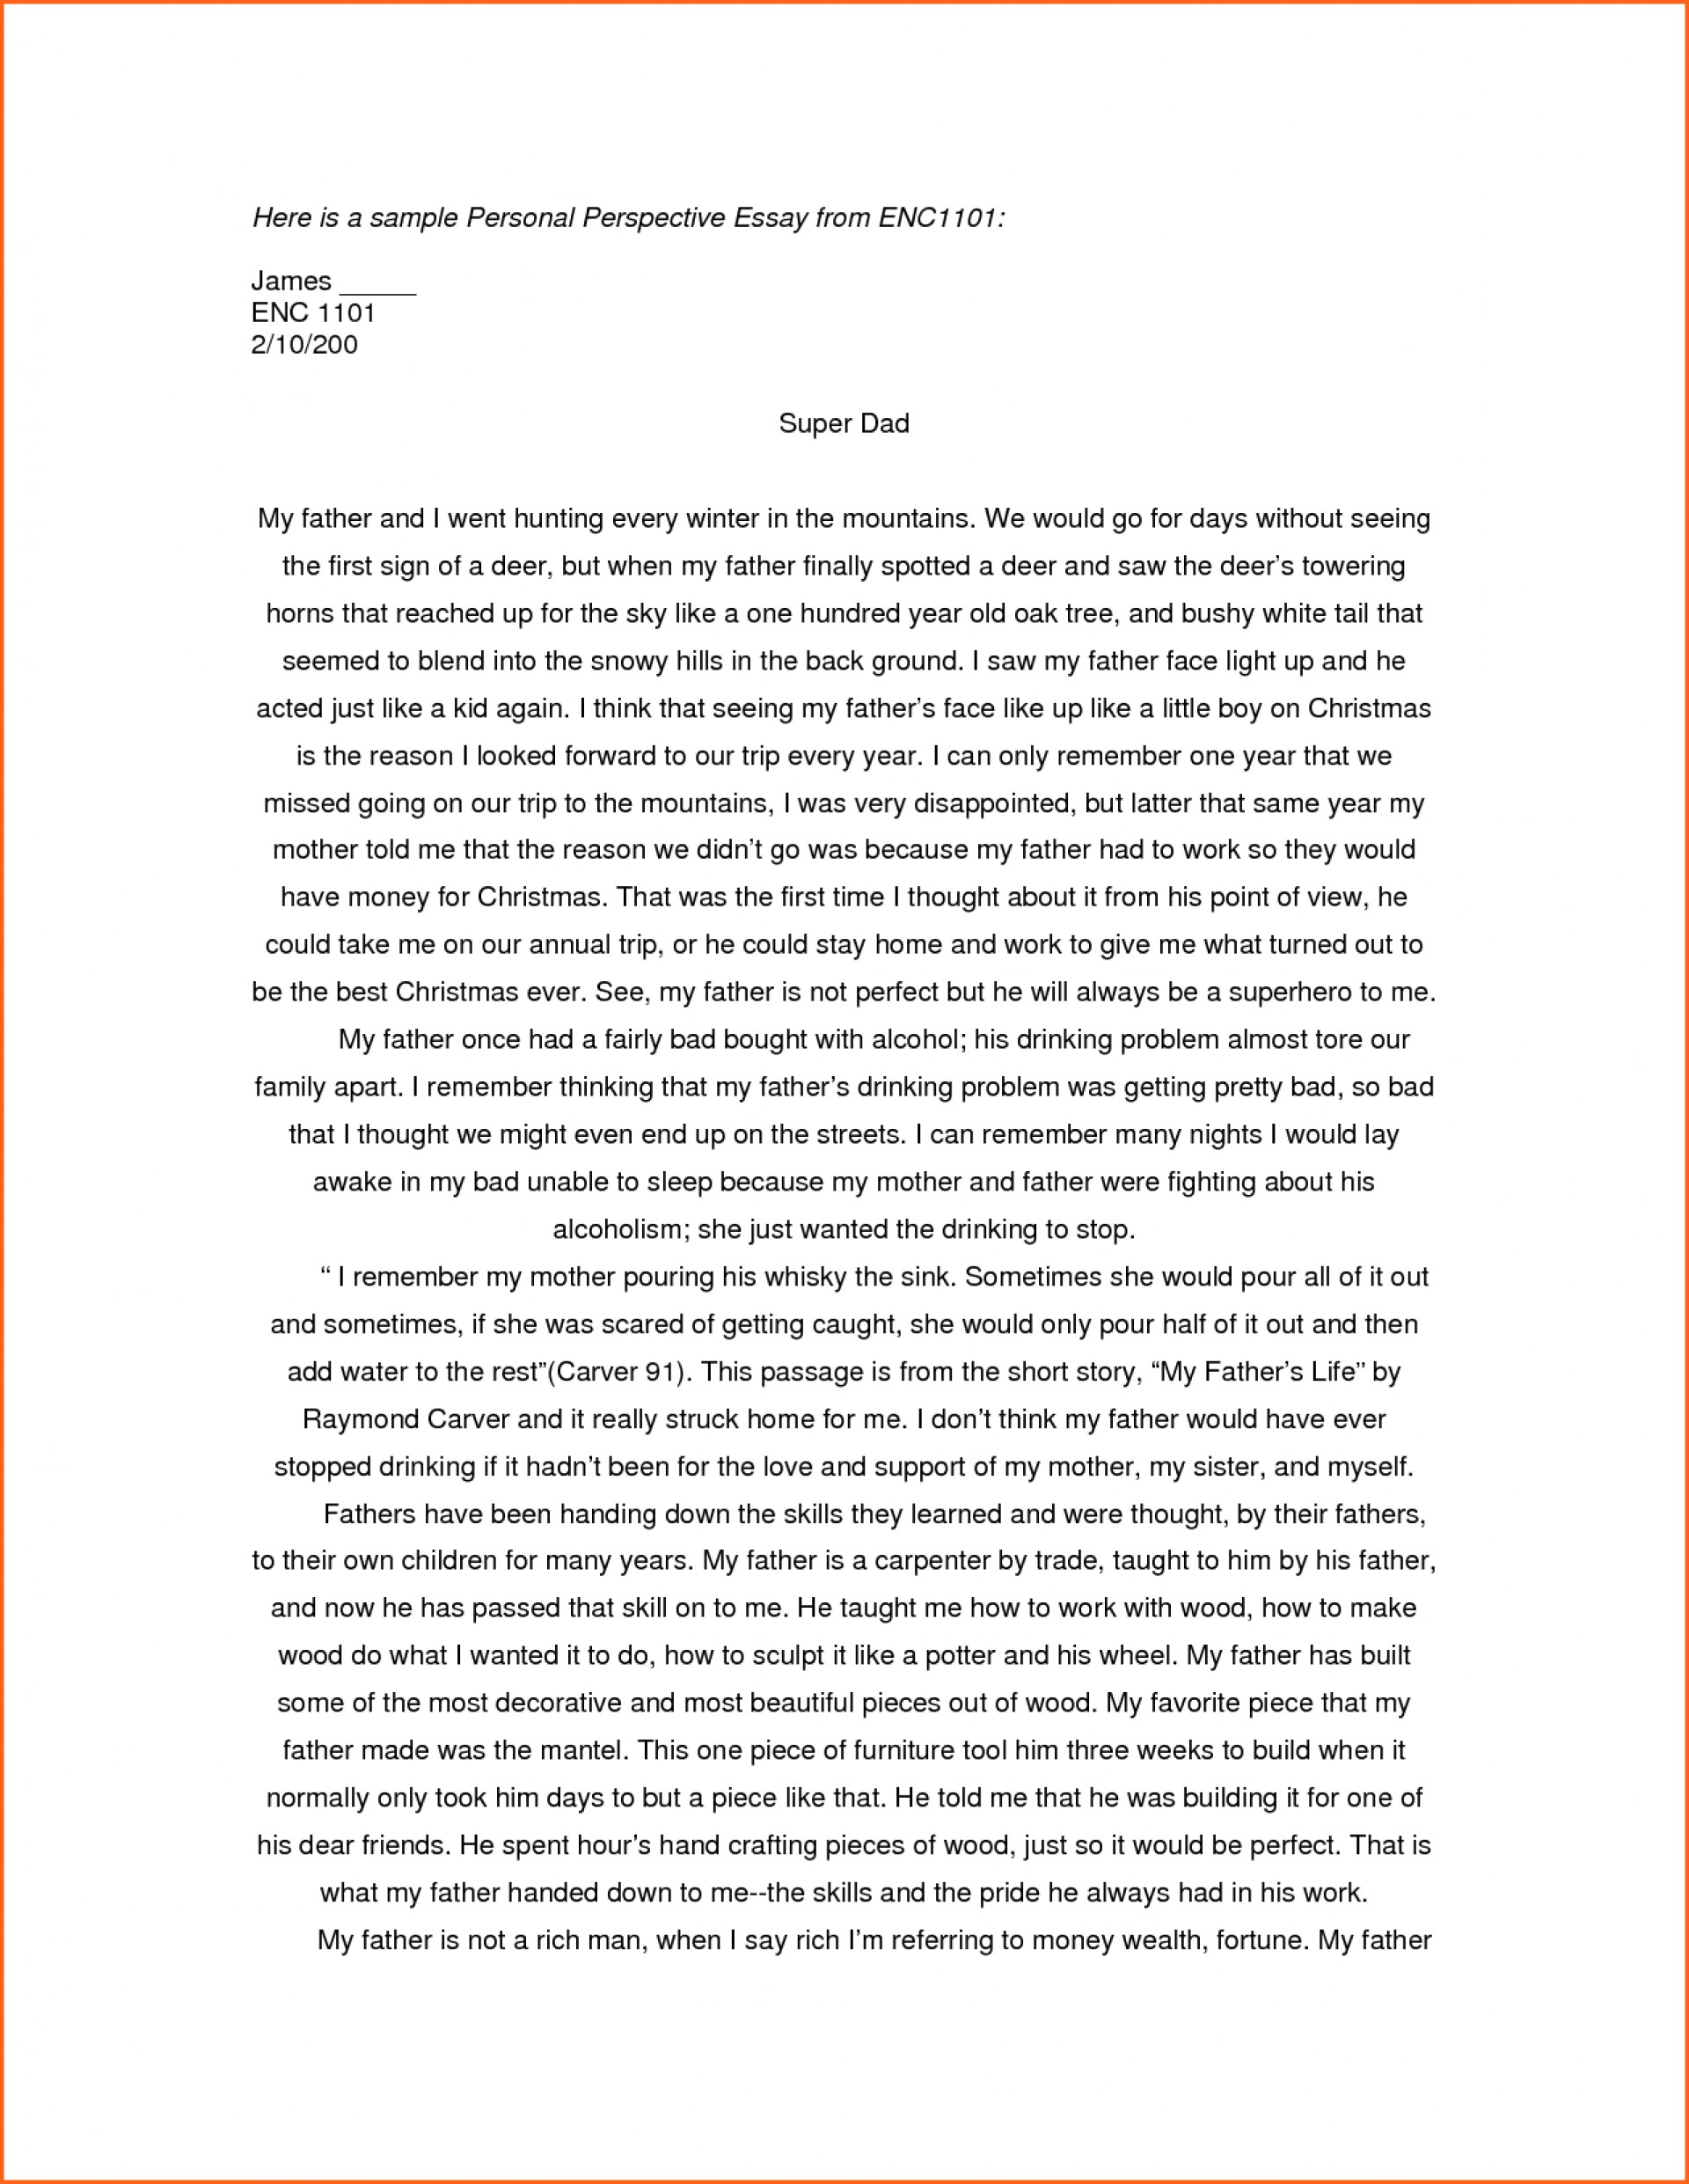 006 Essay Example Stereotype Examples Resume Cv Cover Letter Of College Personal Essays L Stunning For Scholarships High School Pdf About Highschool Life 1920